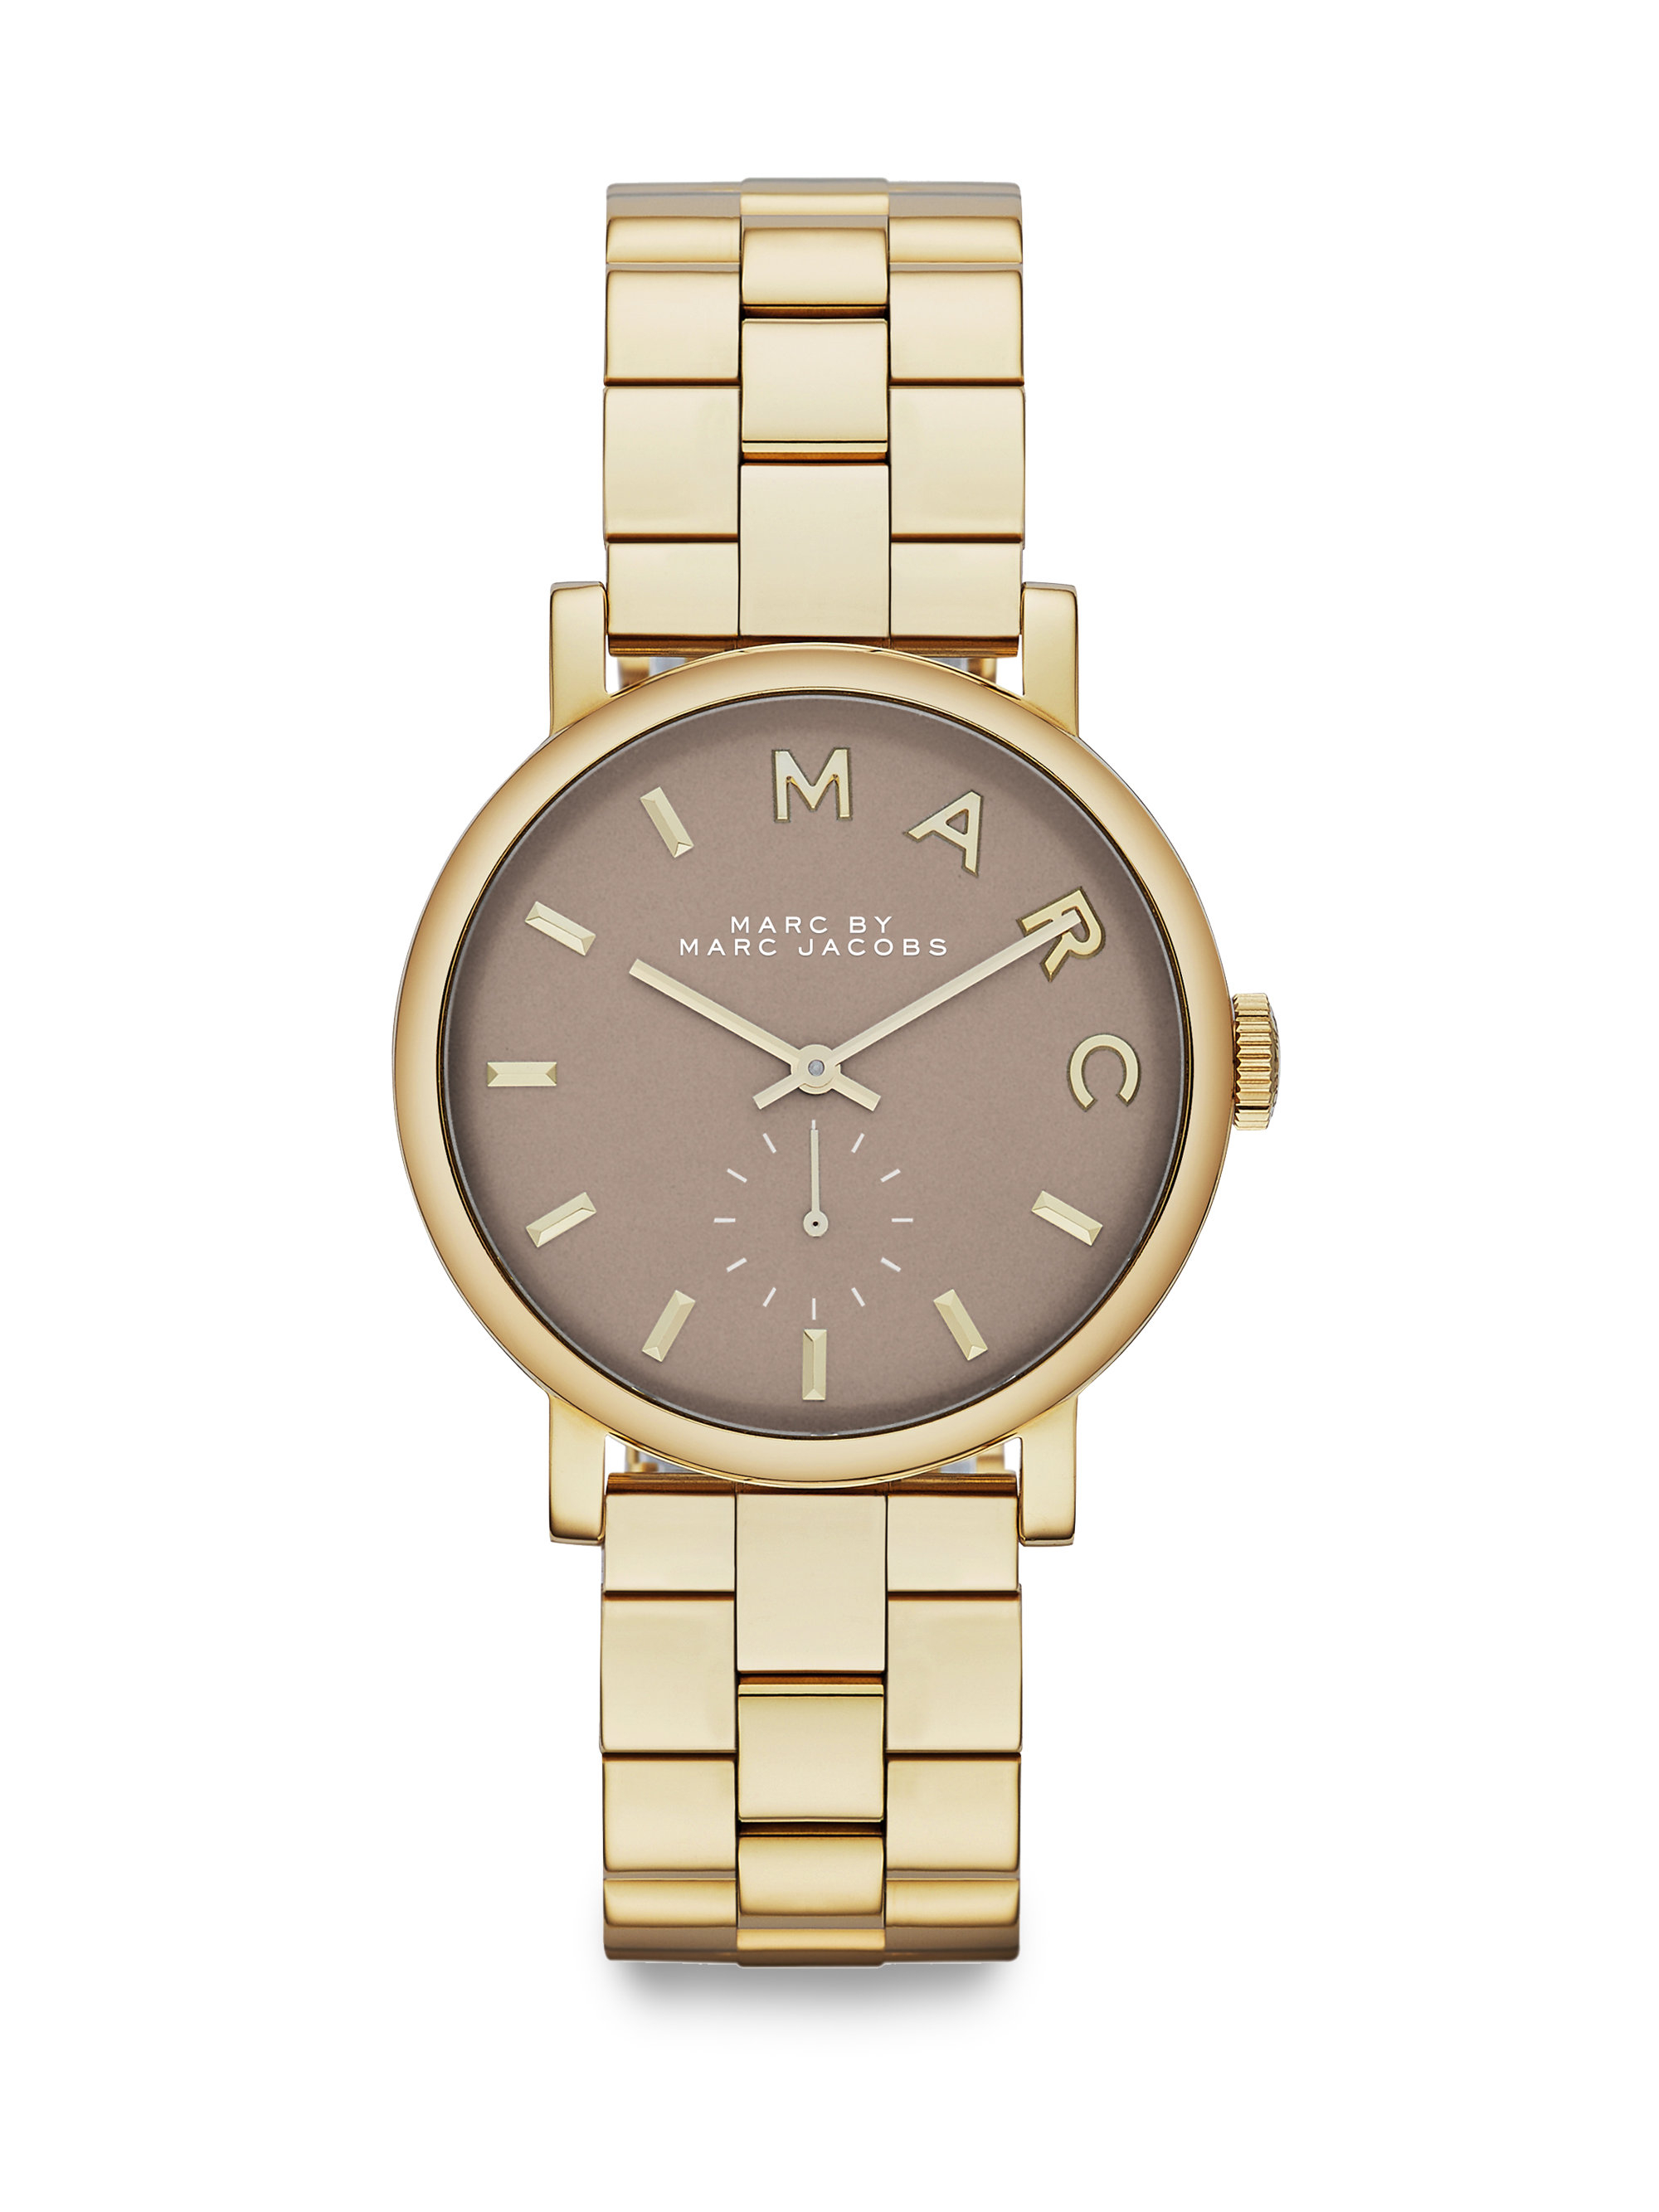 Lyst marc by marc jacobs baker goldtone stainless steel bracelet watch in metallic for Stainless steel watch